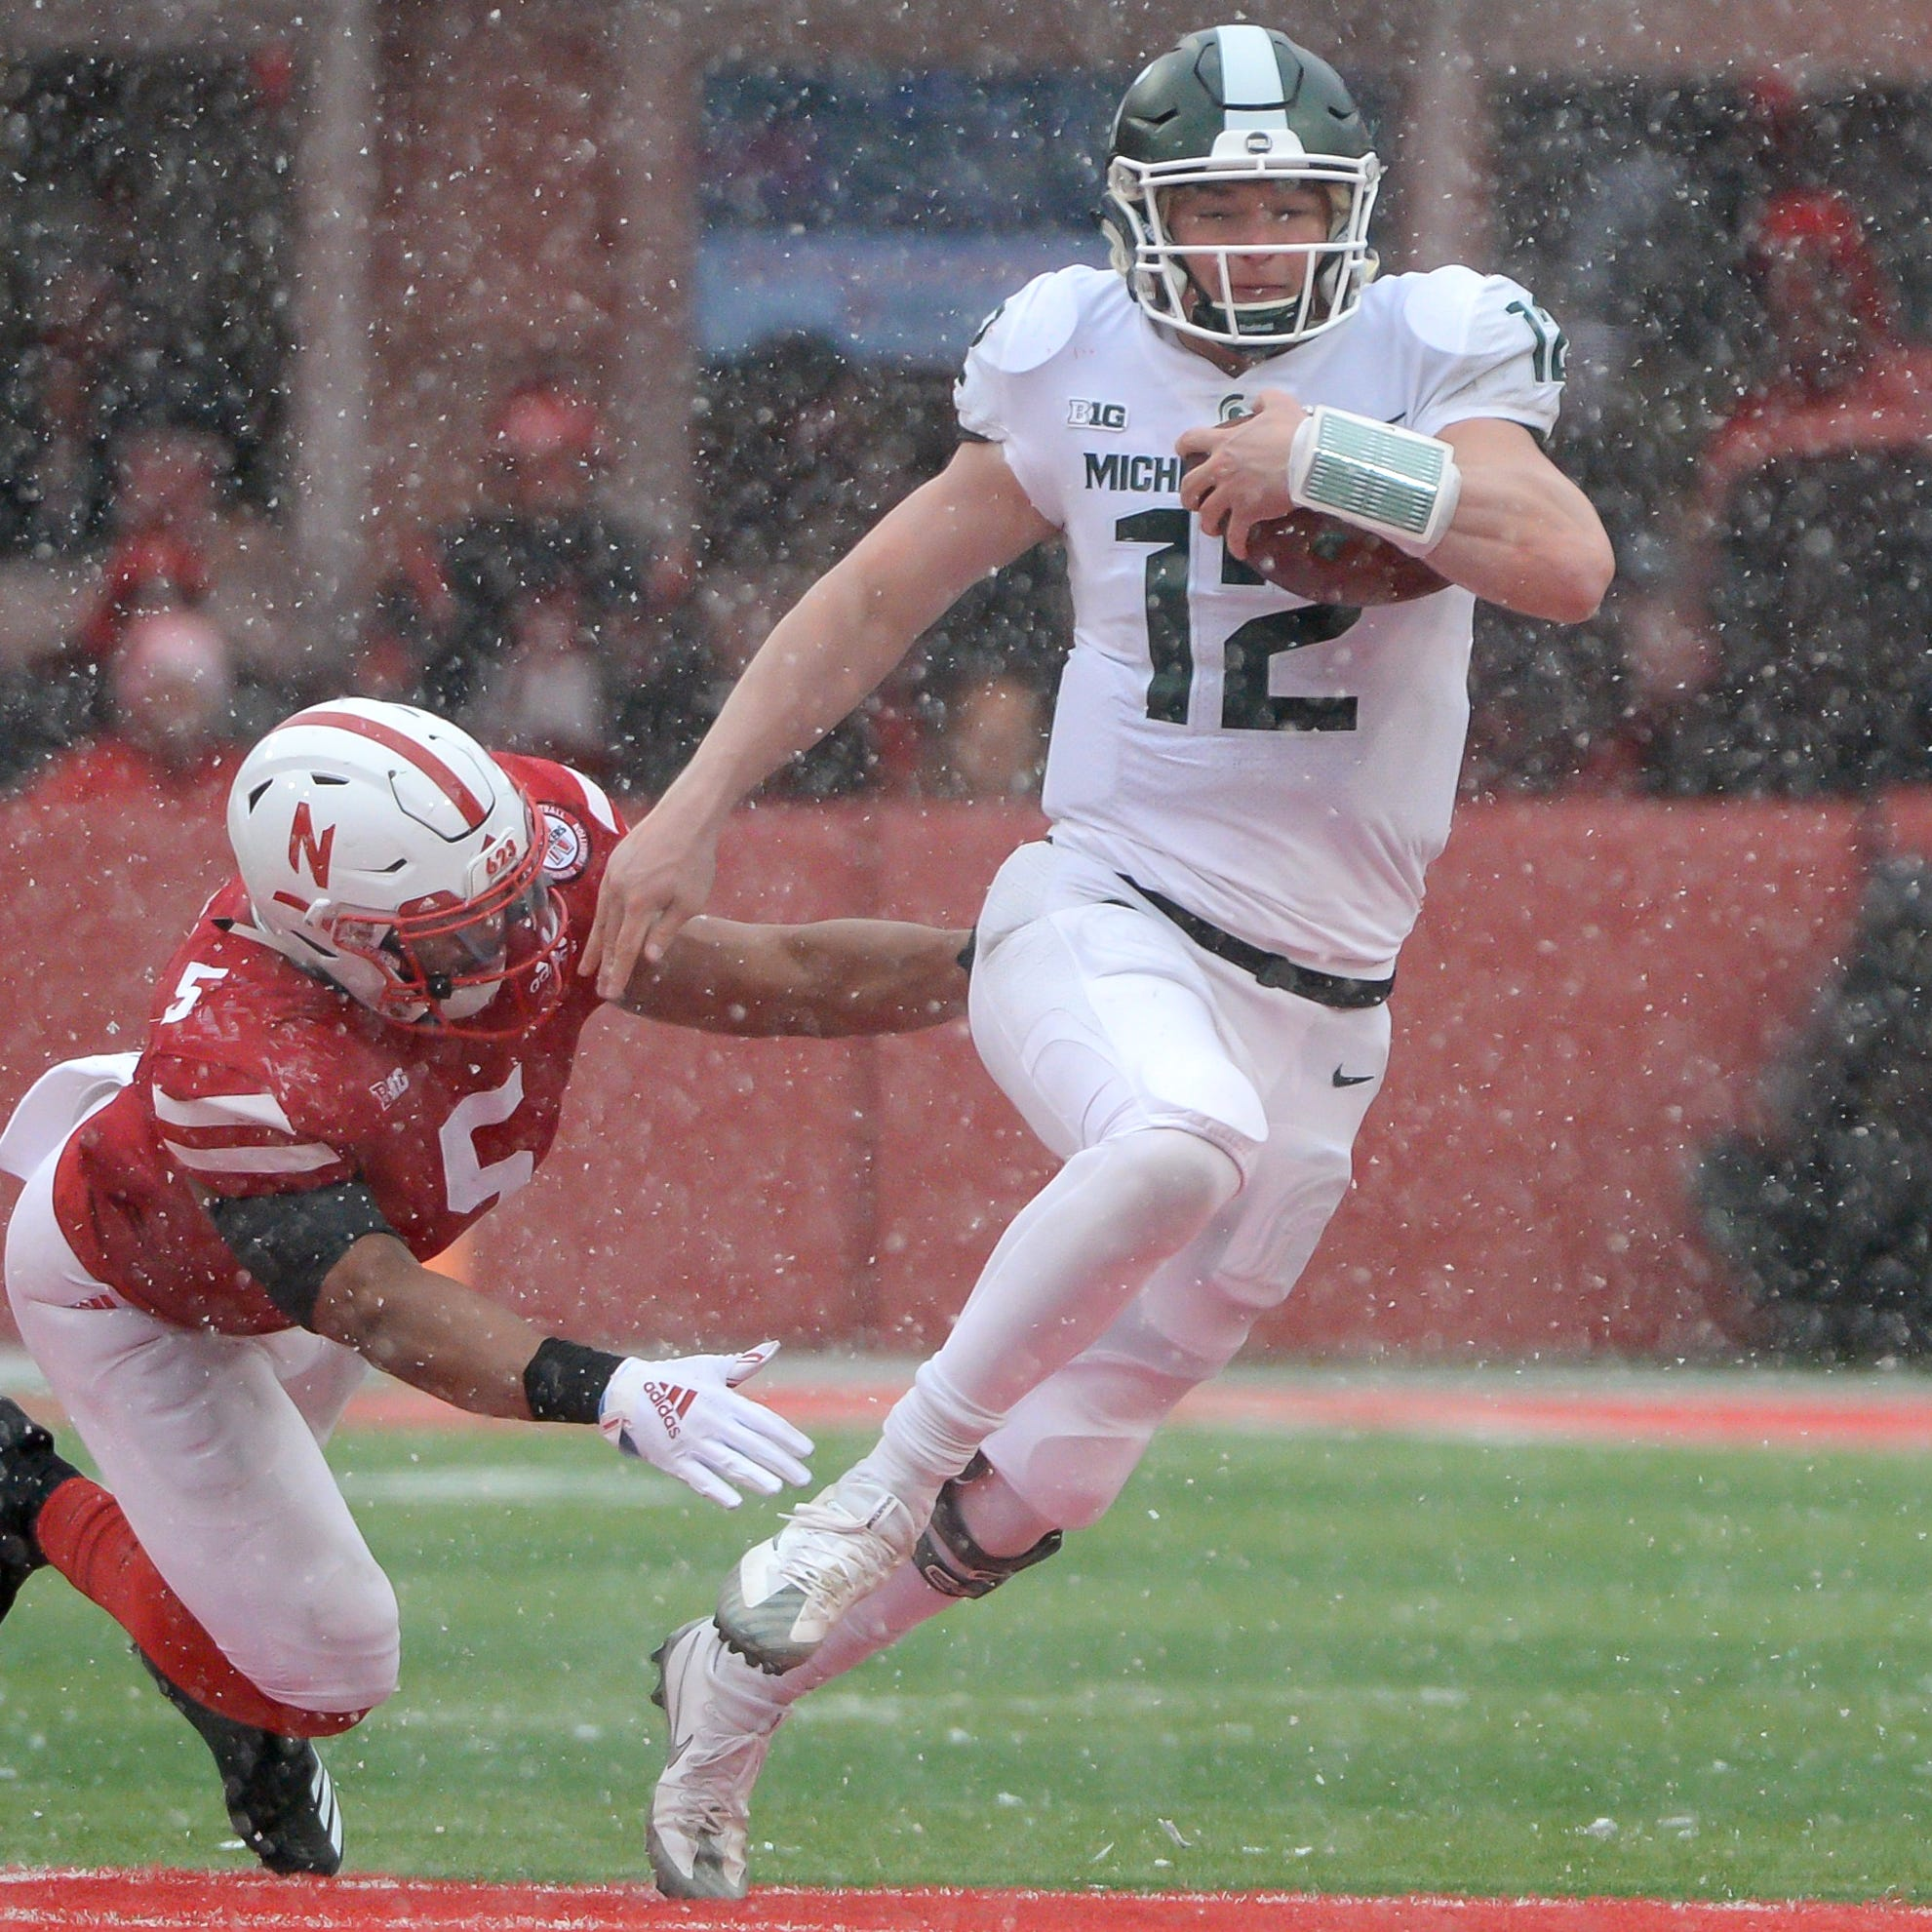 Michigan State football needs to find new voice on offensive staff